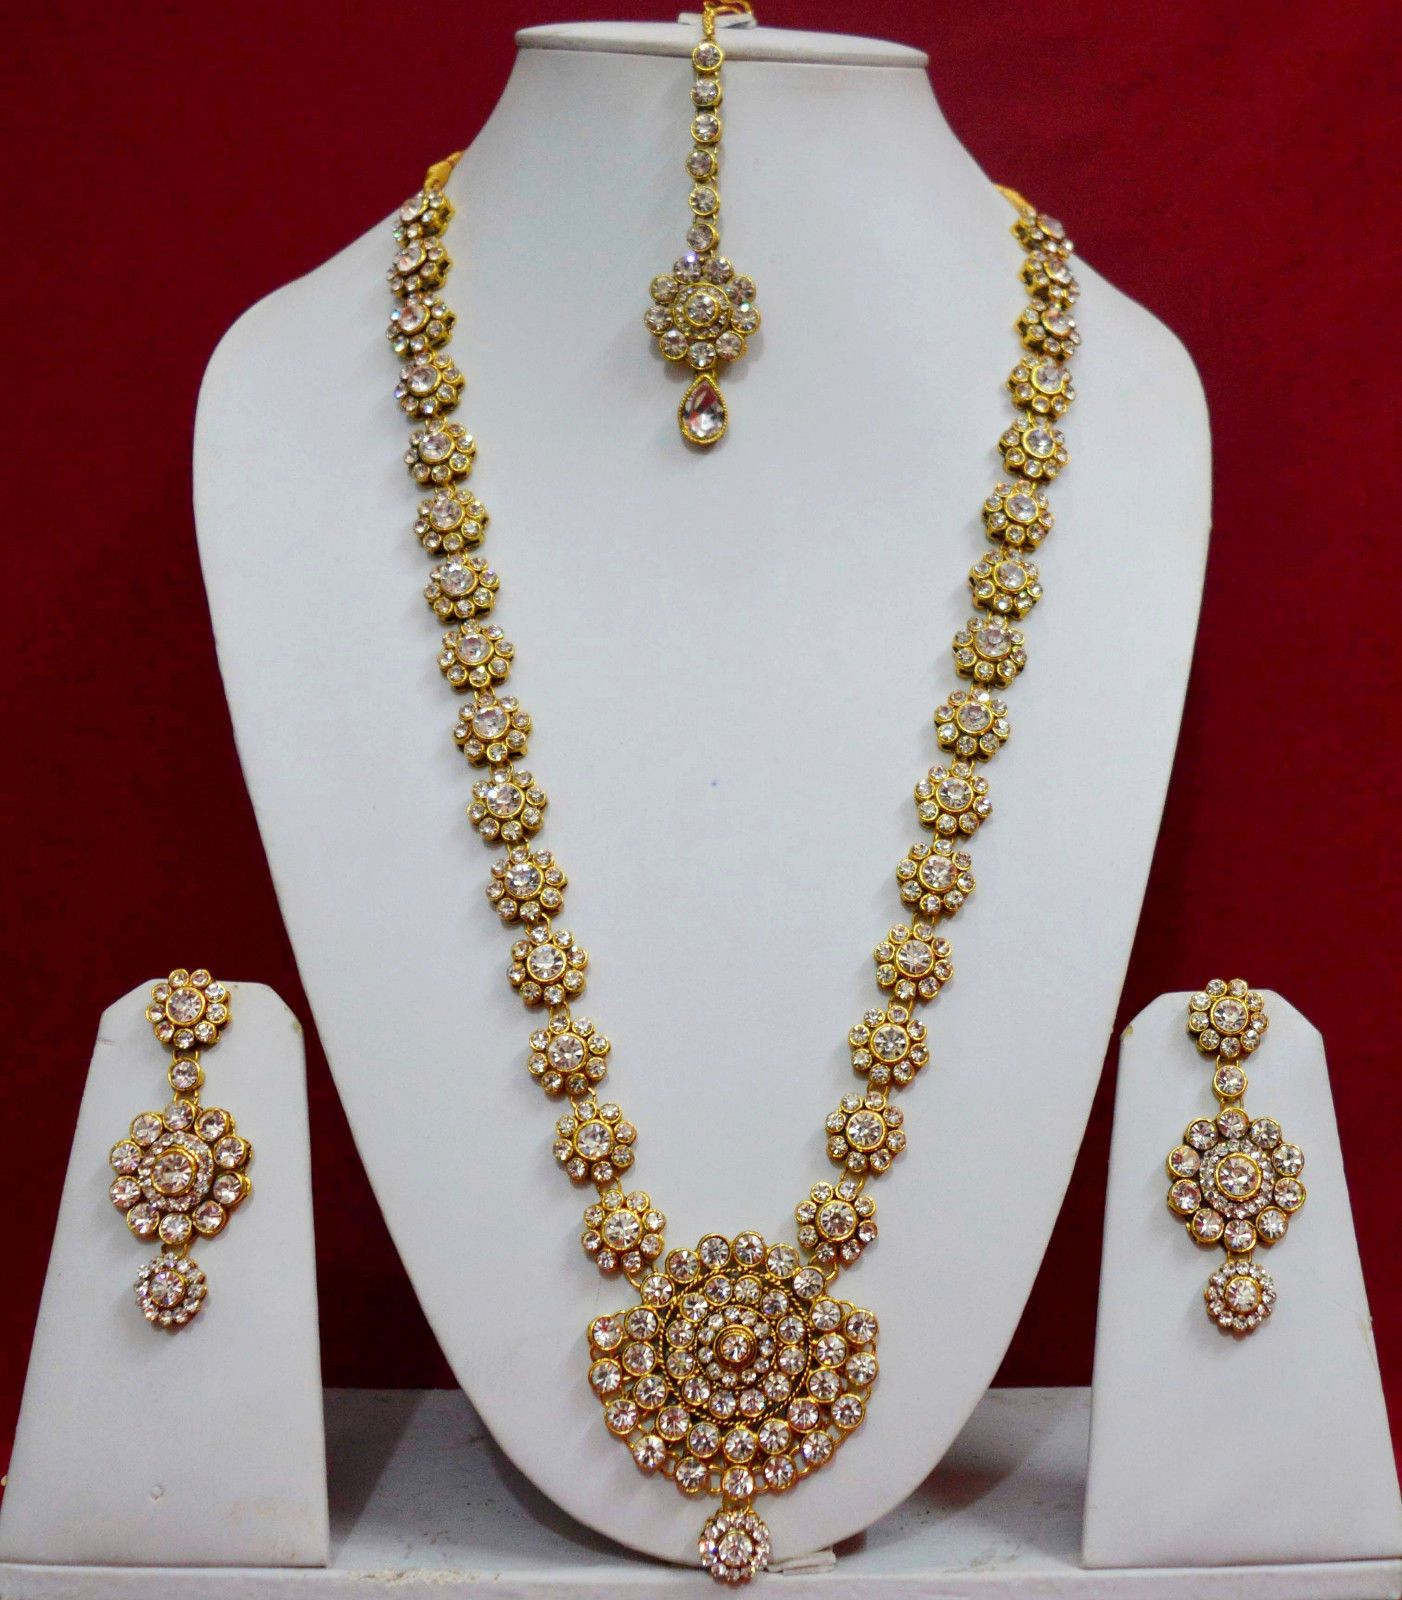 Gold rani haar pictures to pin on pinterest - Indian Rani Haar Wedding Jewelry Necklace Earrings Long Bridal Sets